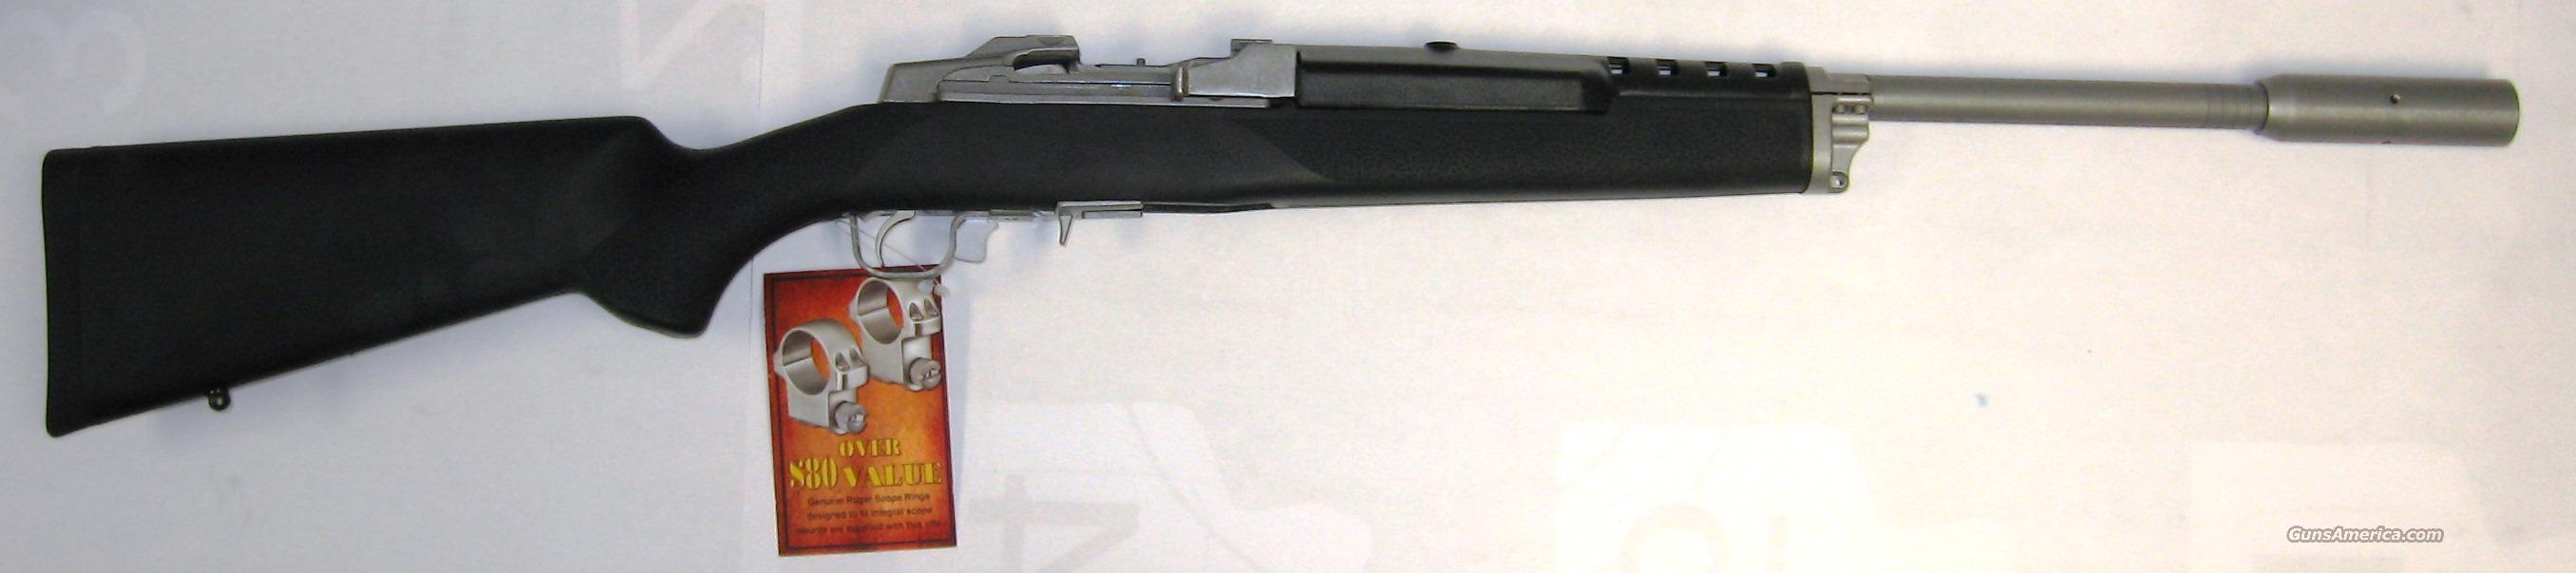 Ruger Mini-14 Target Ranch Rifle   Guns > Rifles > Ruger Rifles > Mini-14 Type